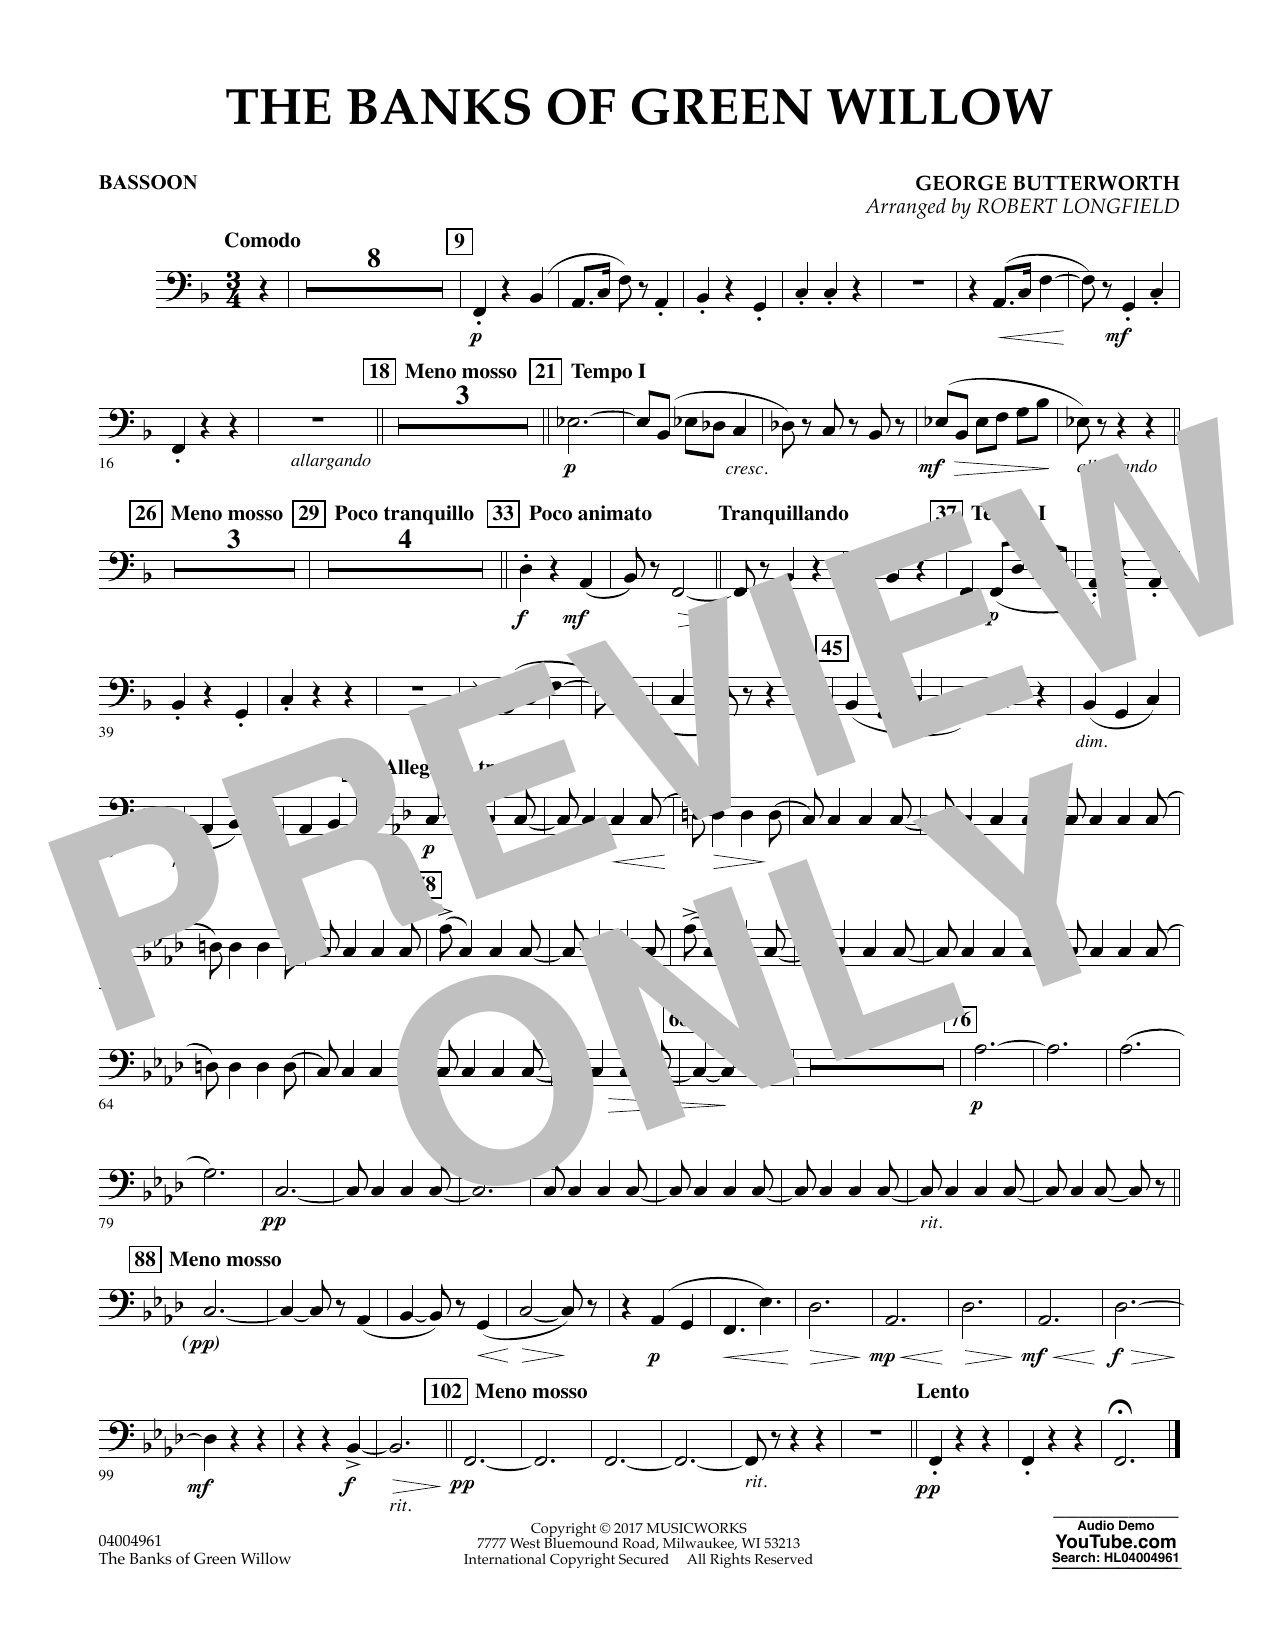 Robert Longfield The Banks of Green Willow - Bassoon sheet music notes and chords. Download Printable PDF.